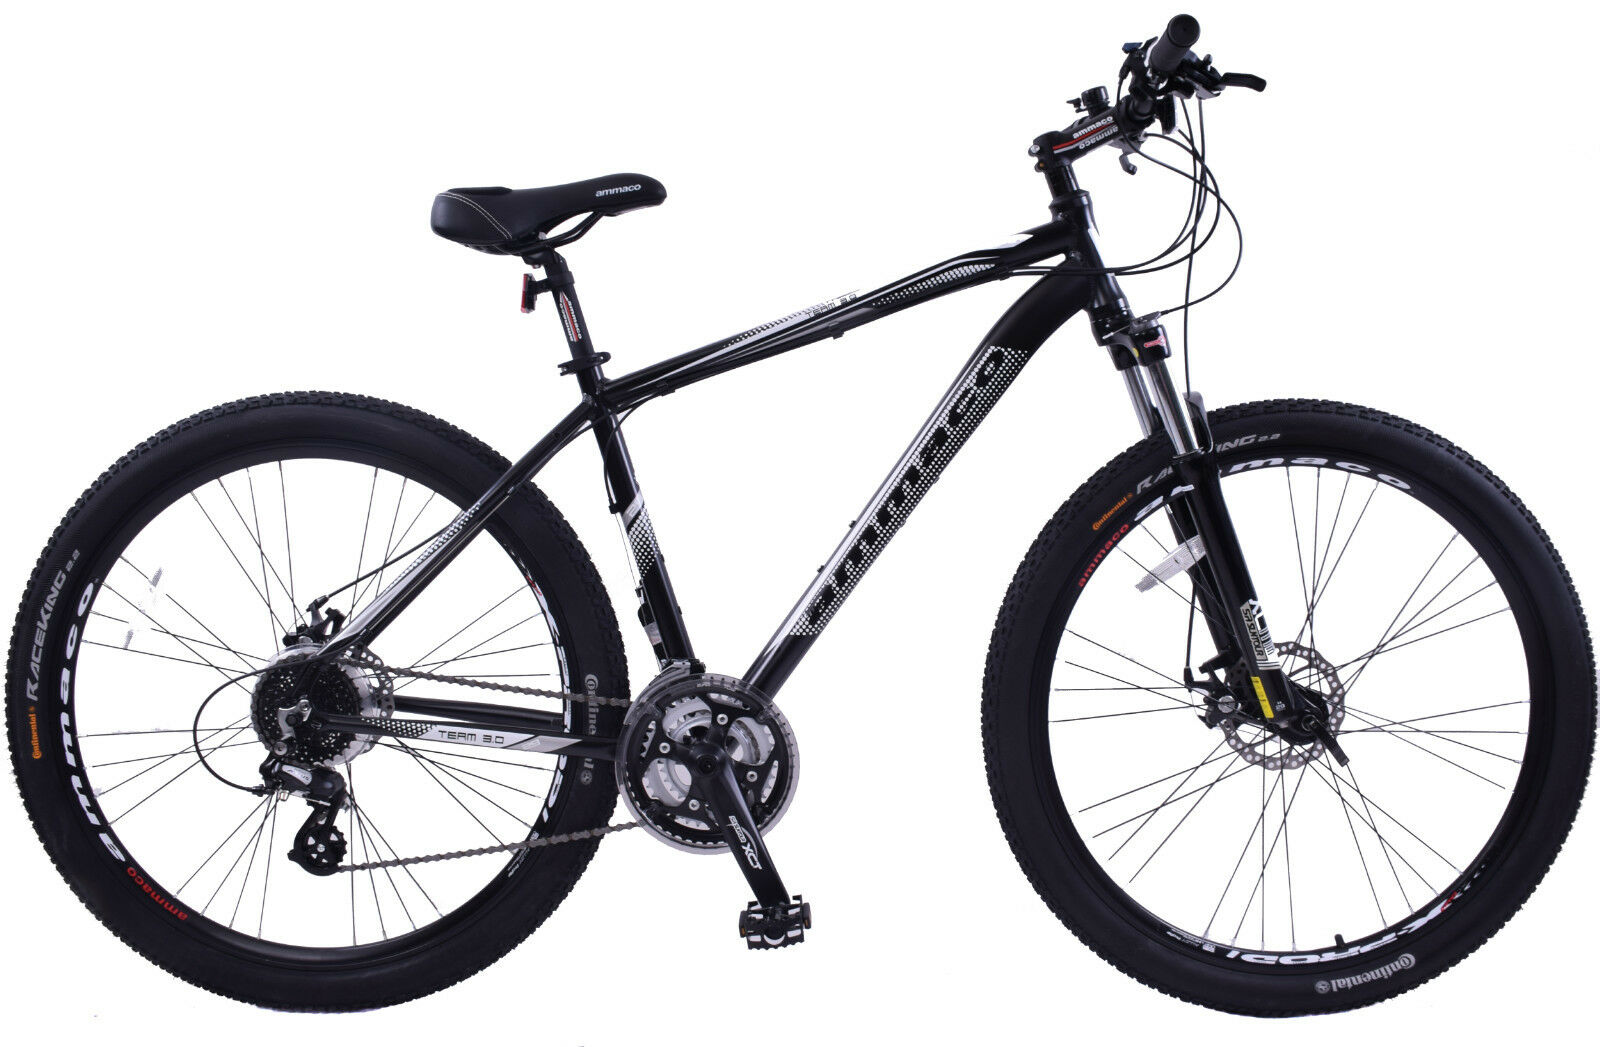 TEAM 3.0 MENS MOUNTAIN BIKE 29  WHEEL 21  ALLOY FRAME 24 SPEED FRONT SUSPENSION